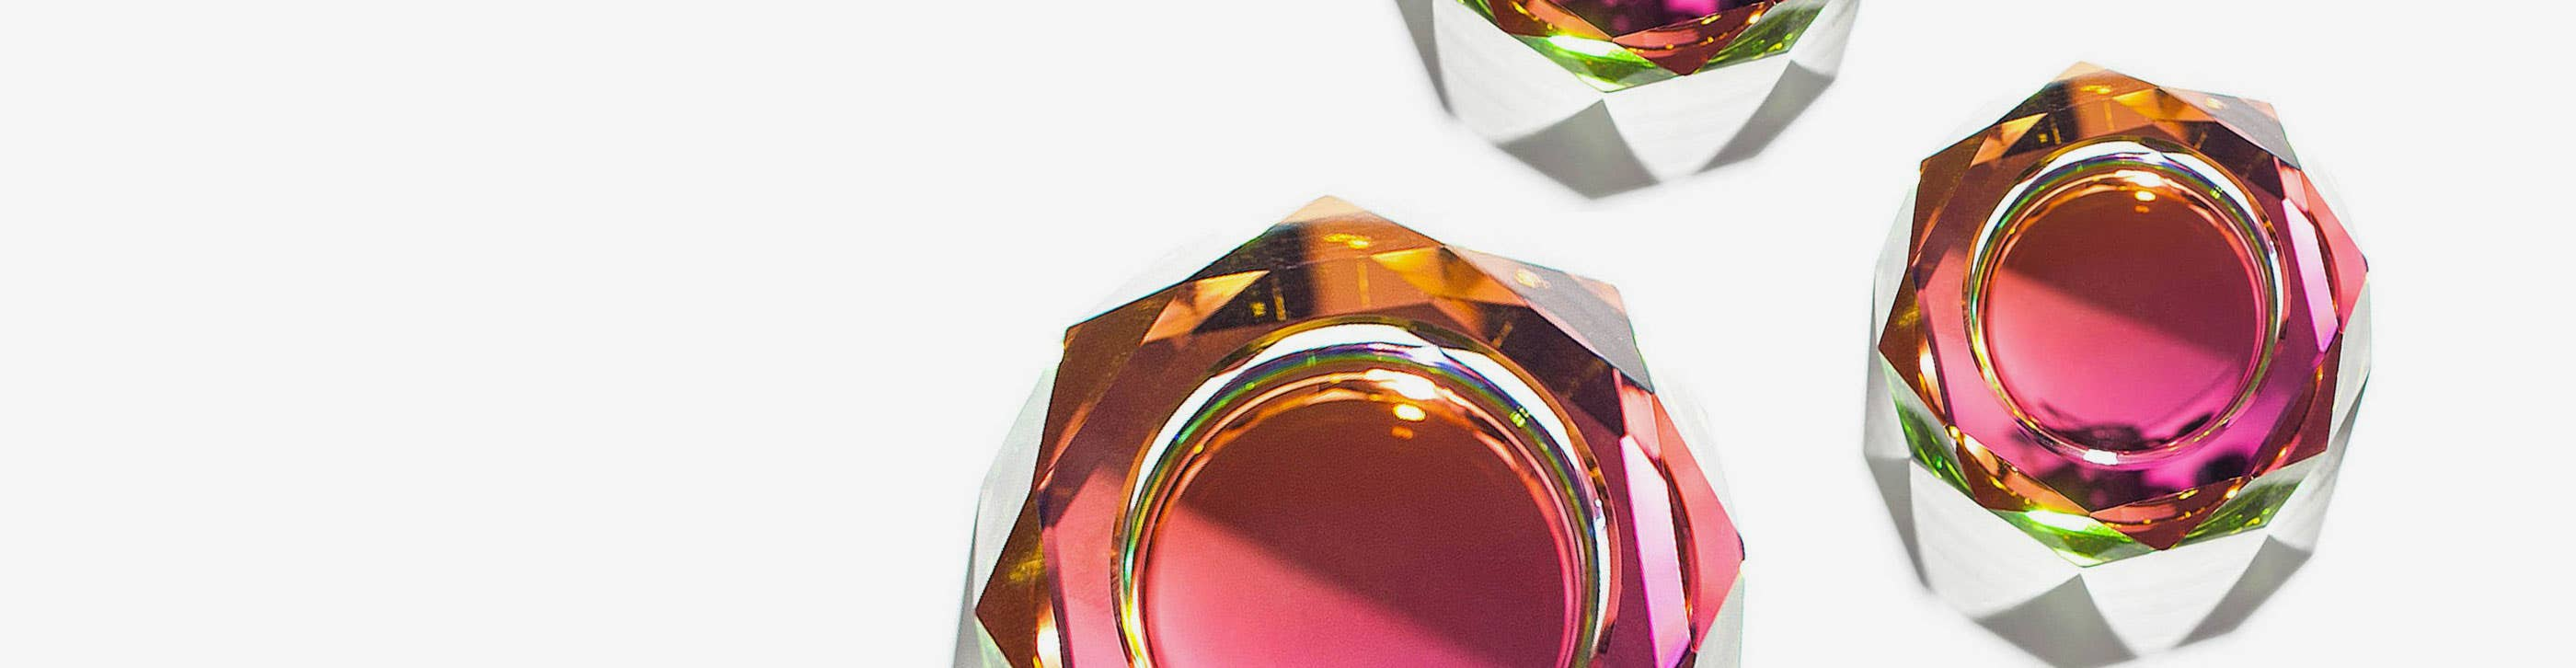 Three Industry West iridescent Regenbogen bowls